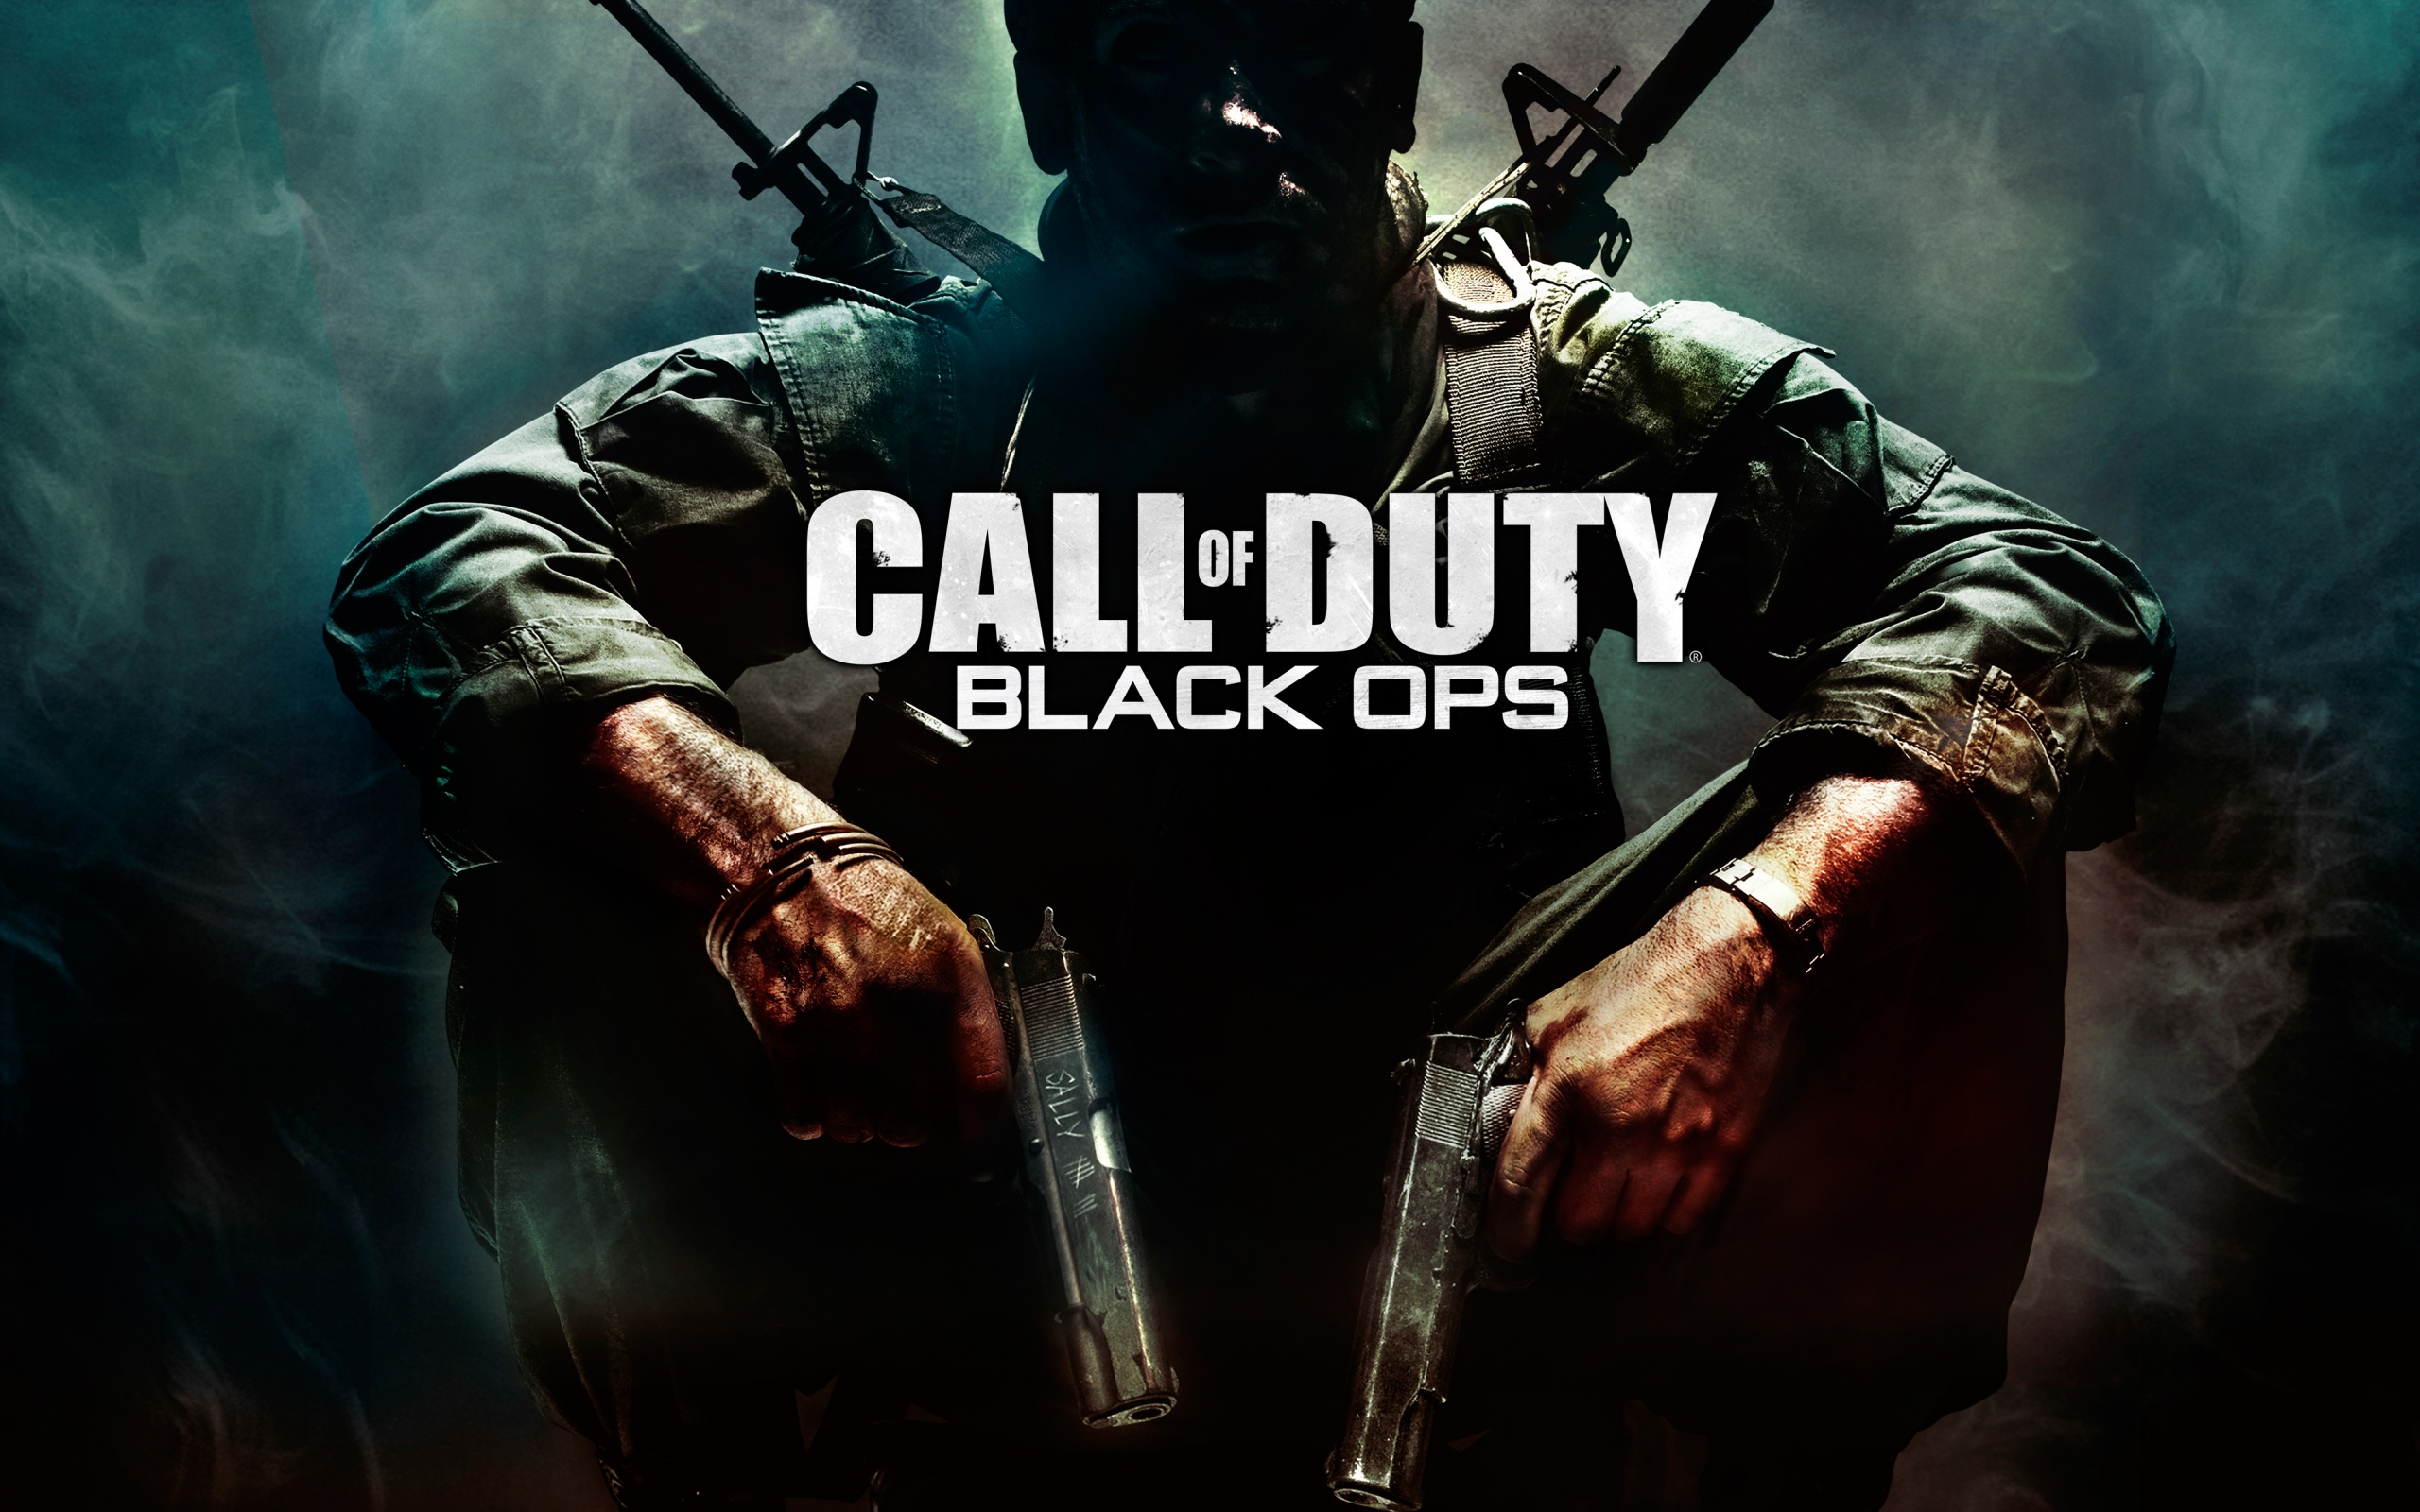 Call of Duty Black OPs Wallpapers HD Wallpapers 2560x1600